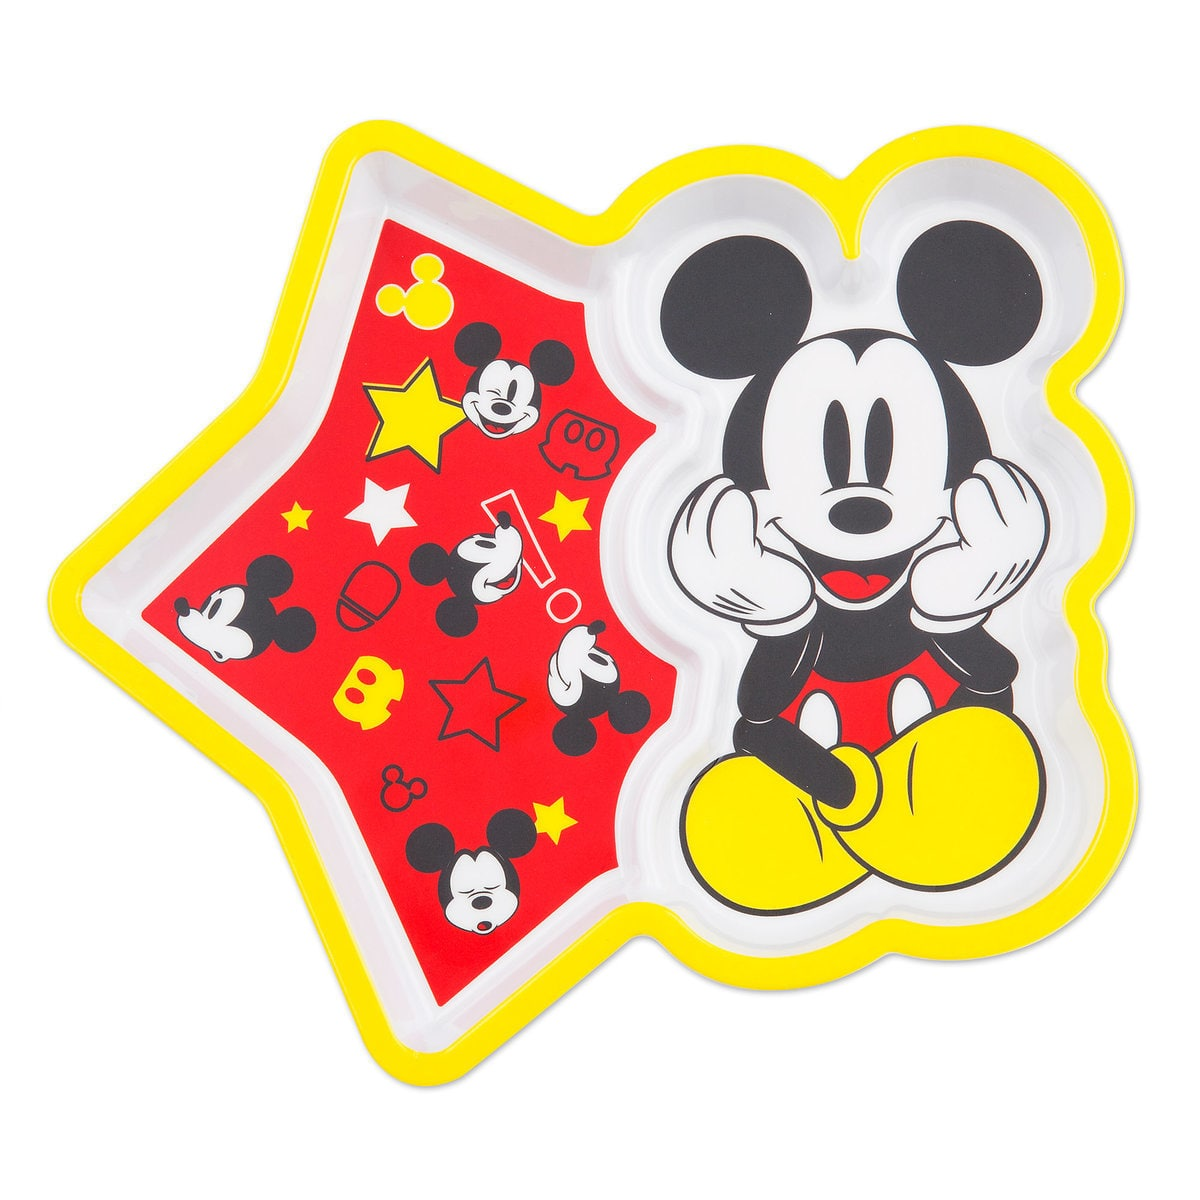 Mickey Mouse plate for toddlers | Top 25 Disney Gift Ideas for Toddlers featured by top US Disney blogger, Marcie and the Mouse